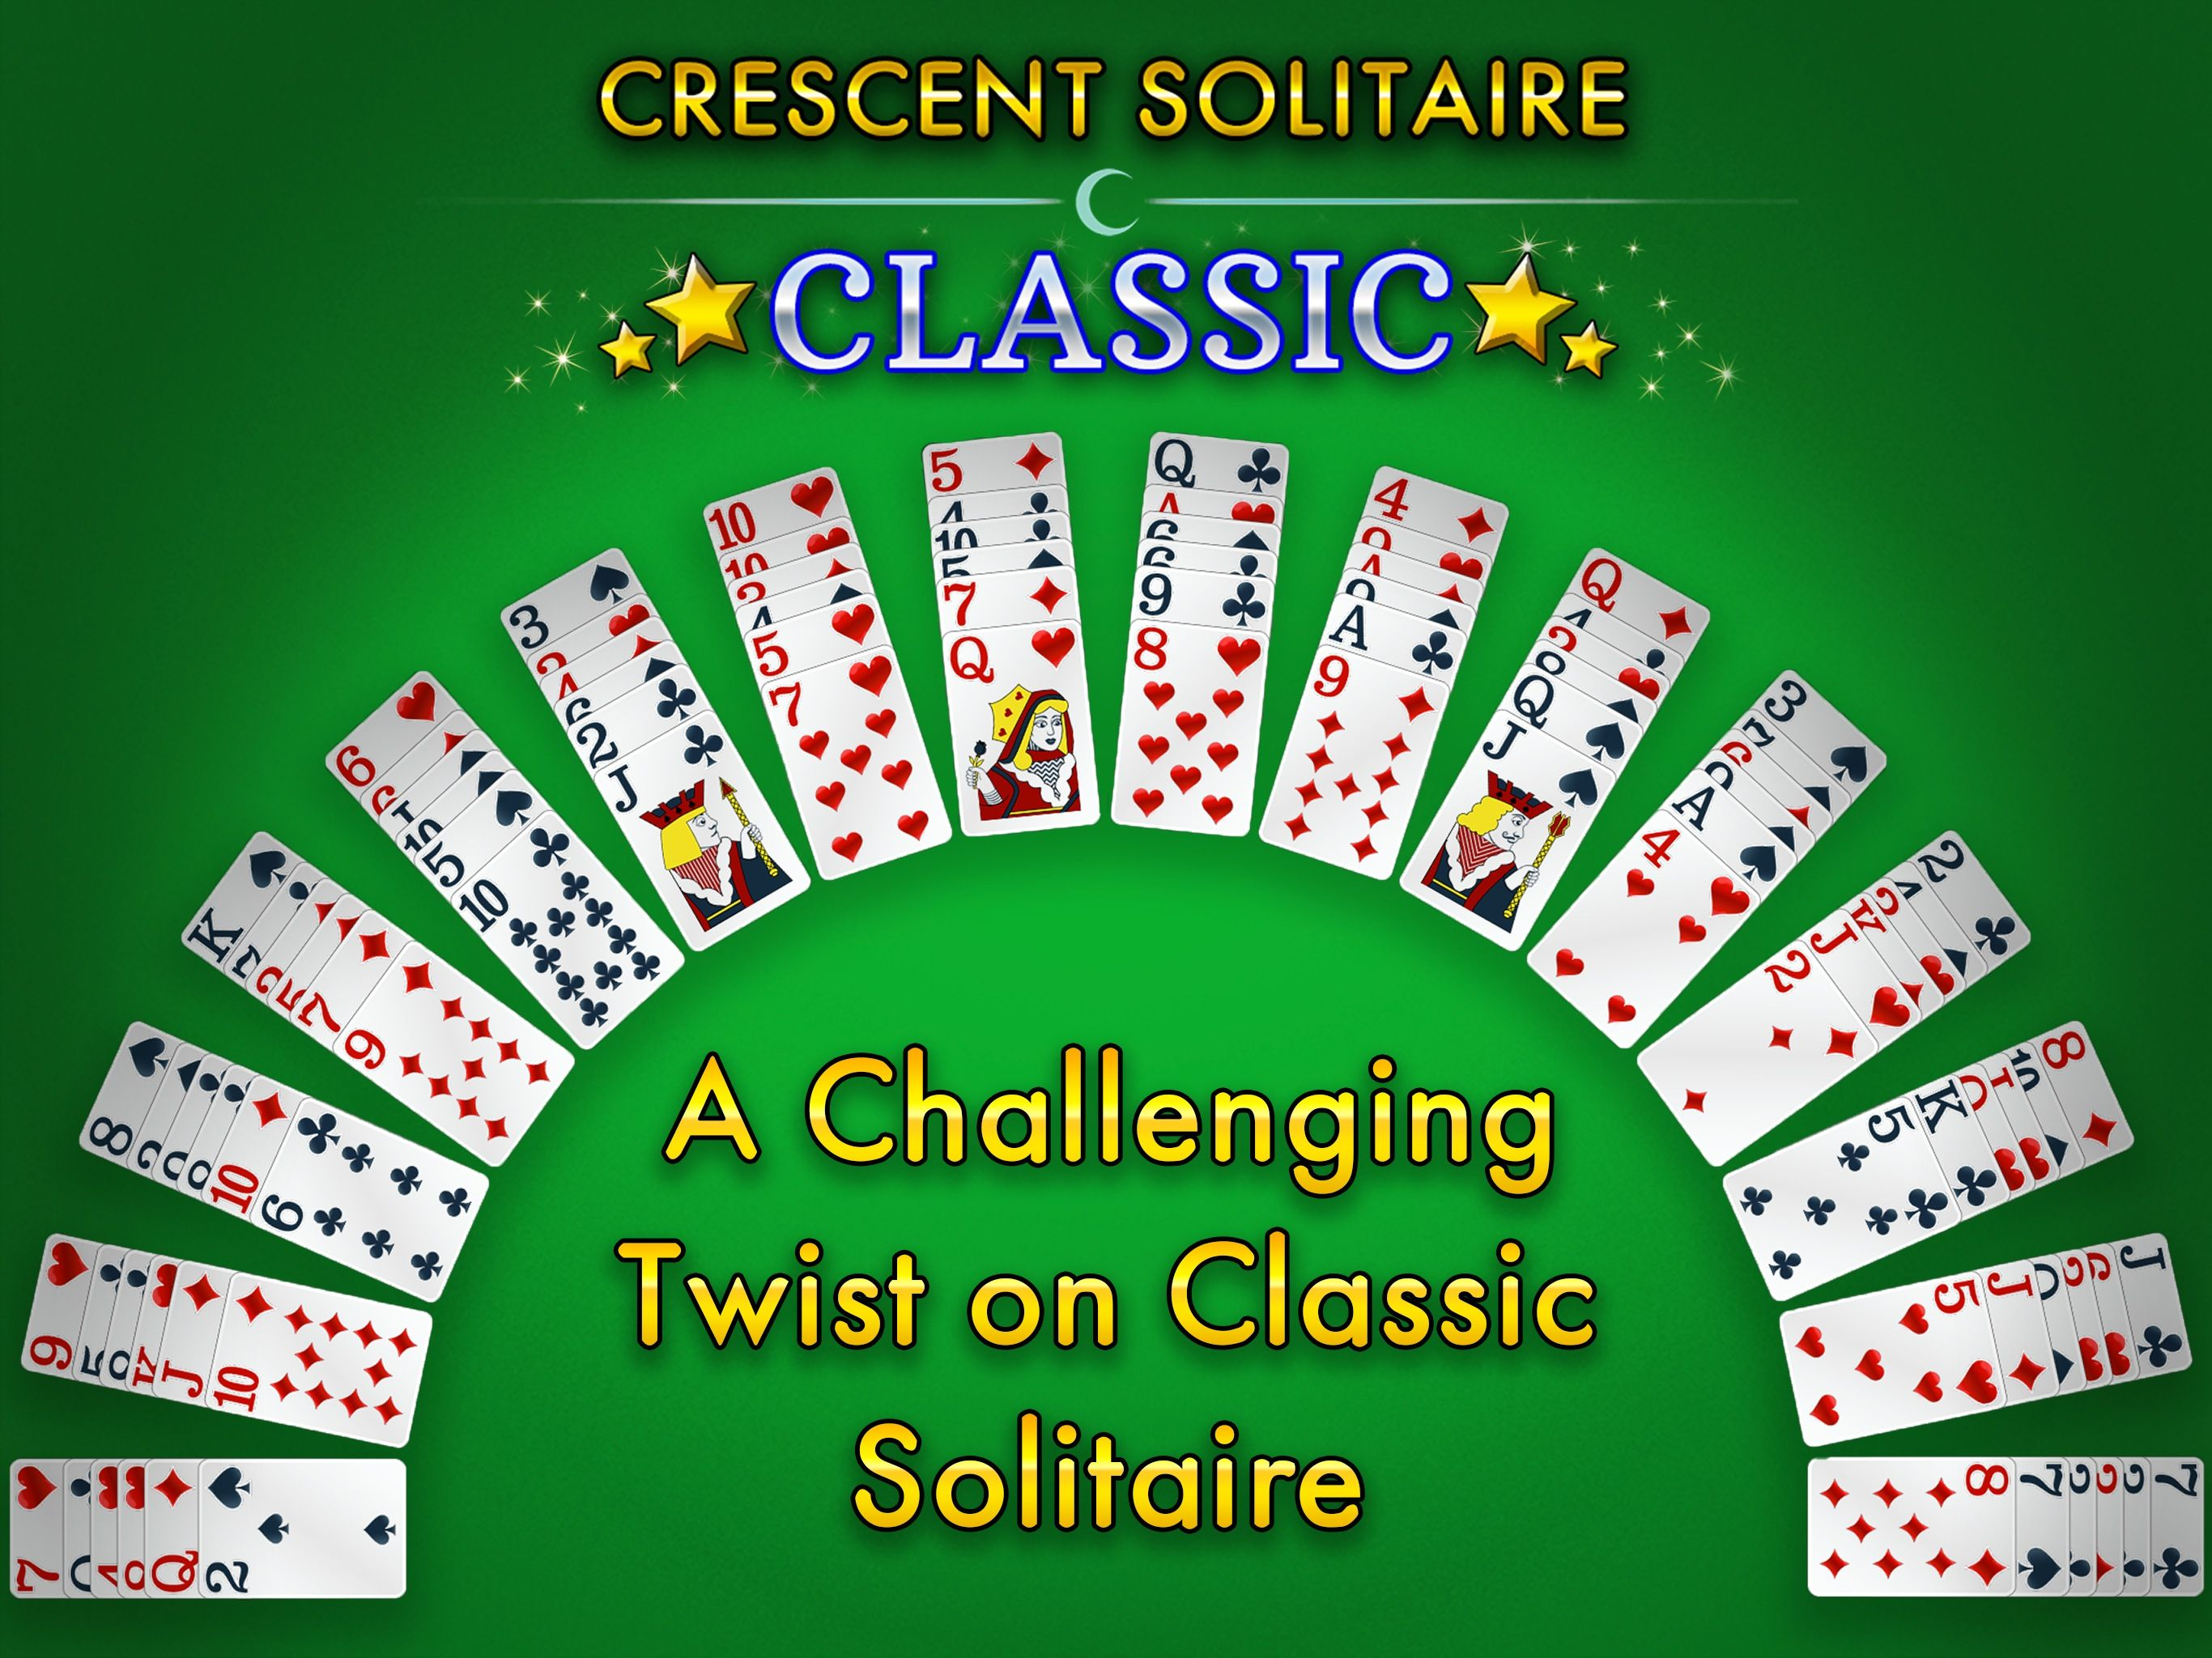 Play Crescent Solitaire Classic from Glowing Eye Games